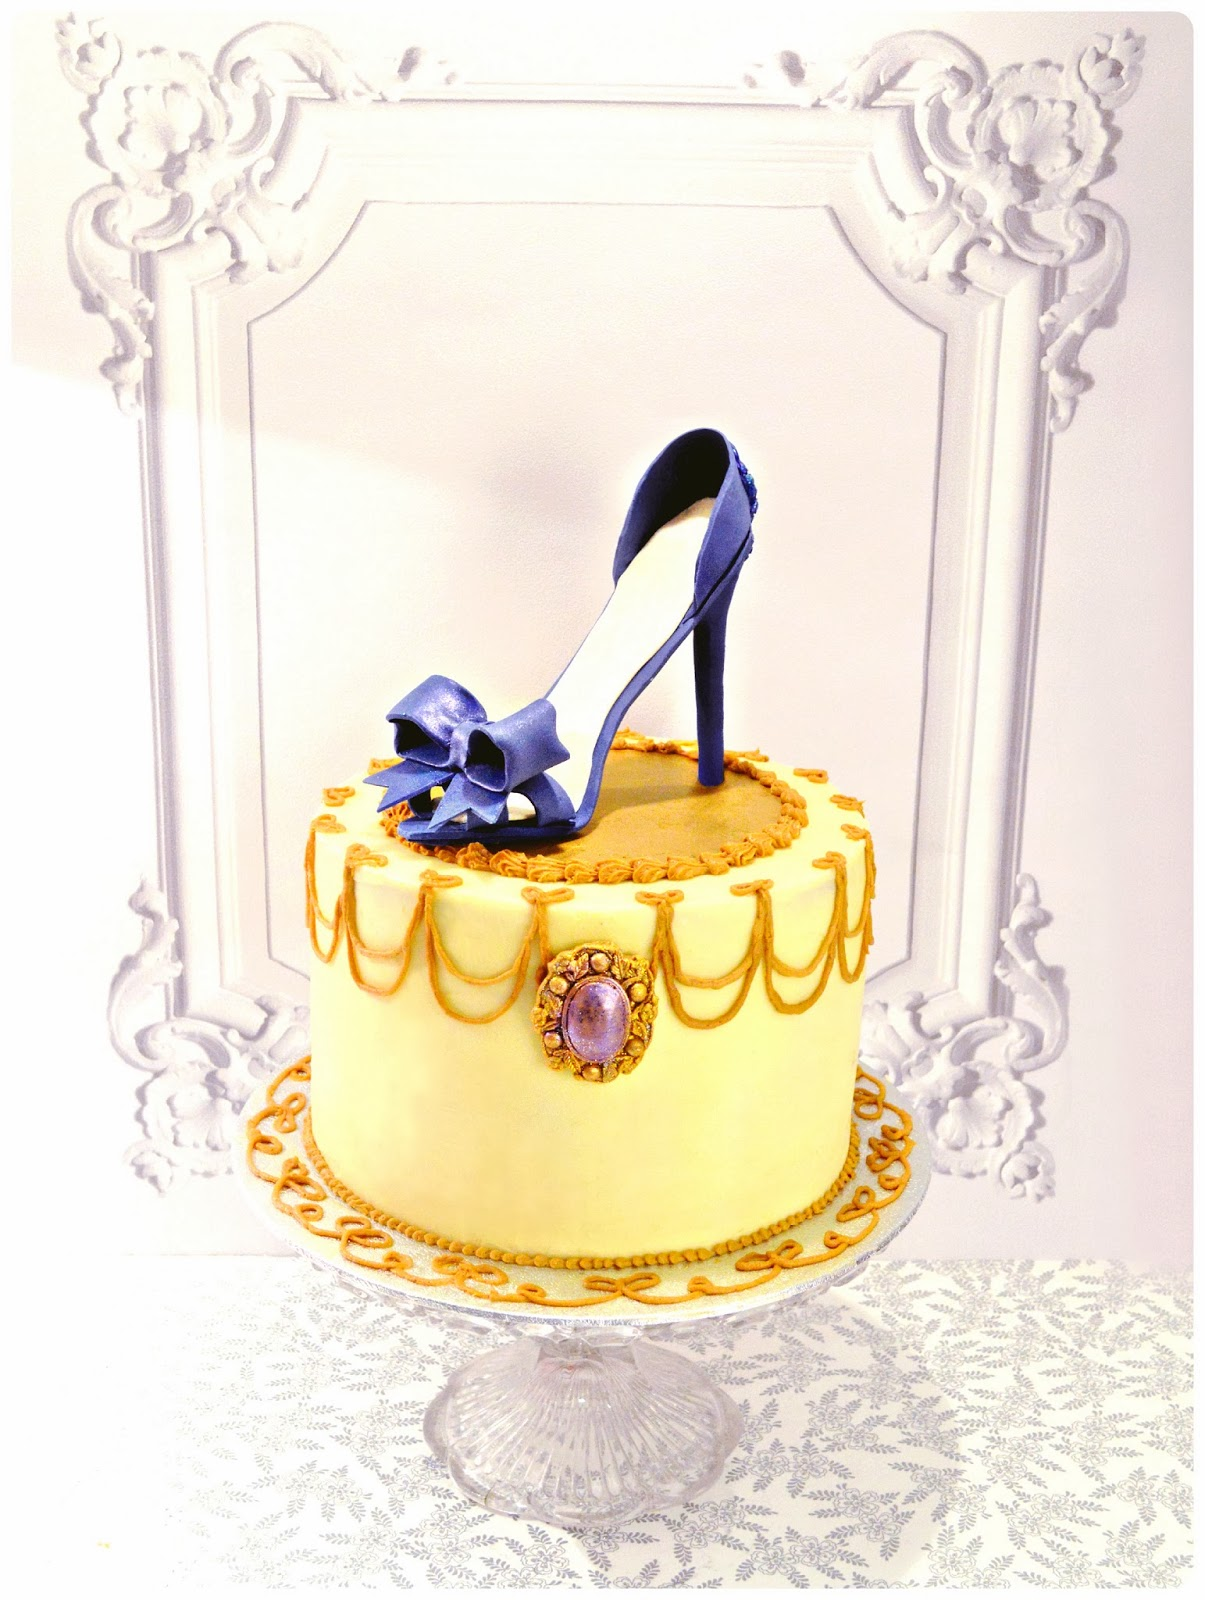 blue high heel shoe with bow and jewel Cherie Kelly Cake London